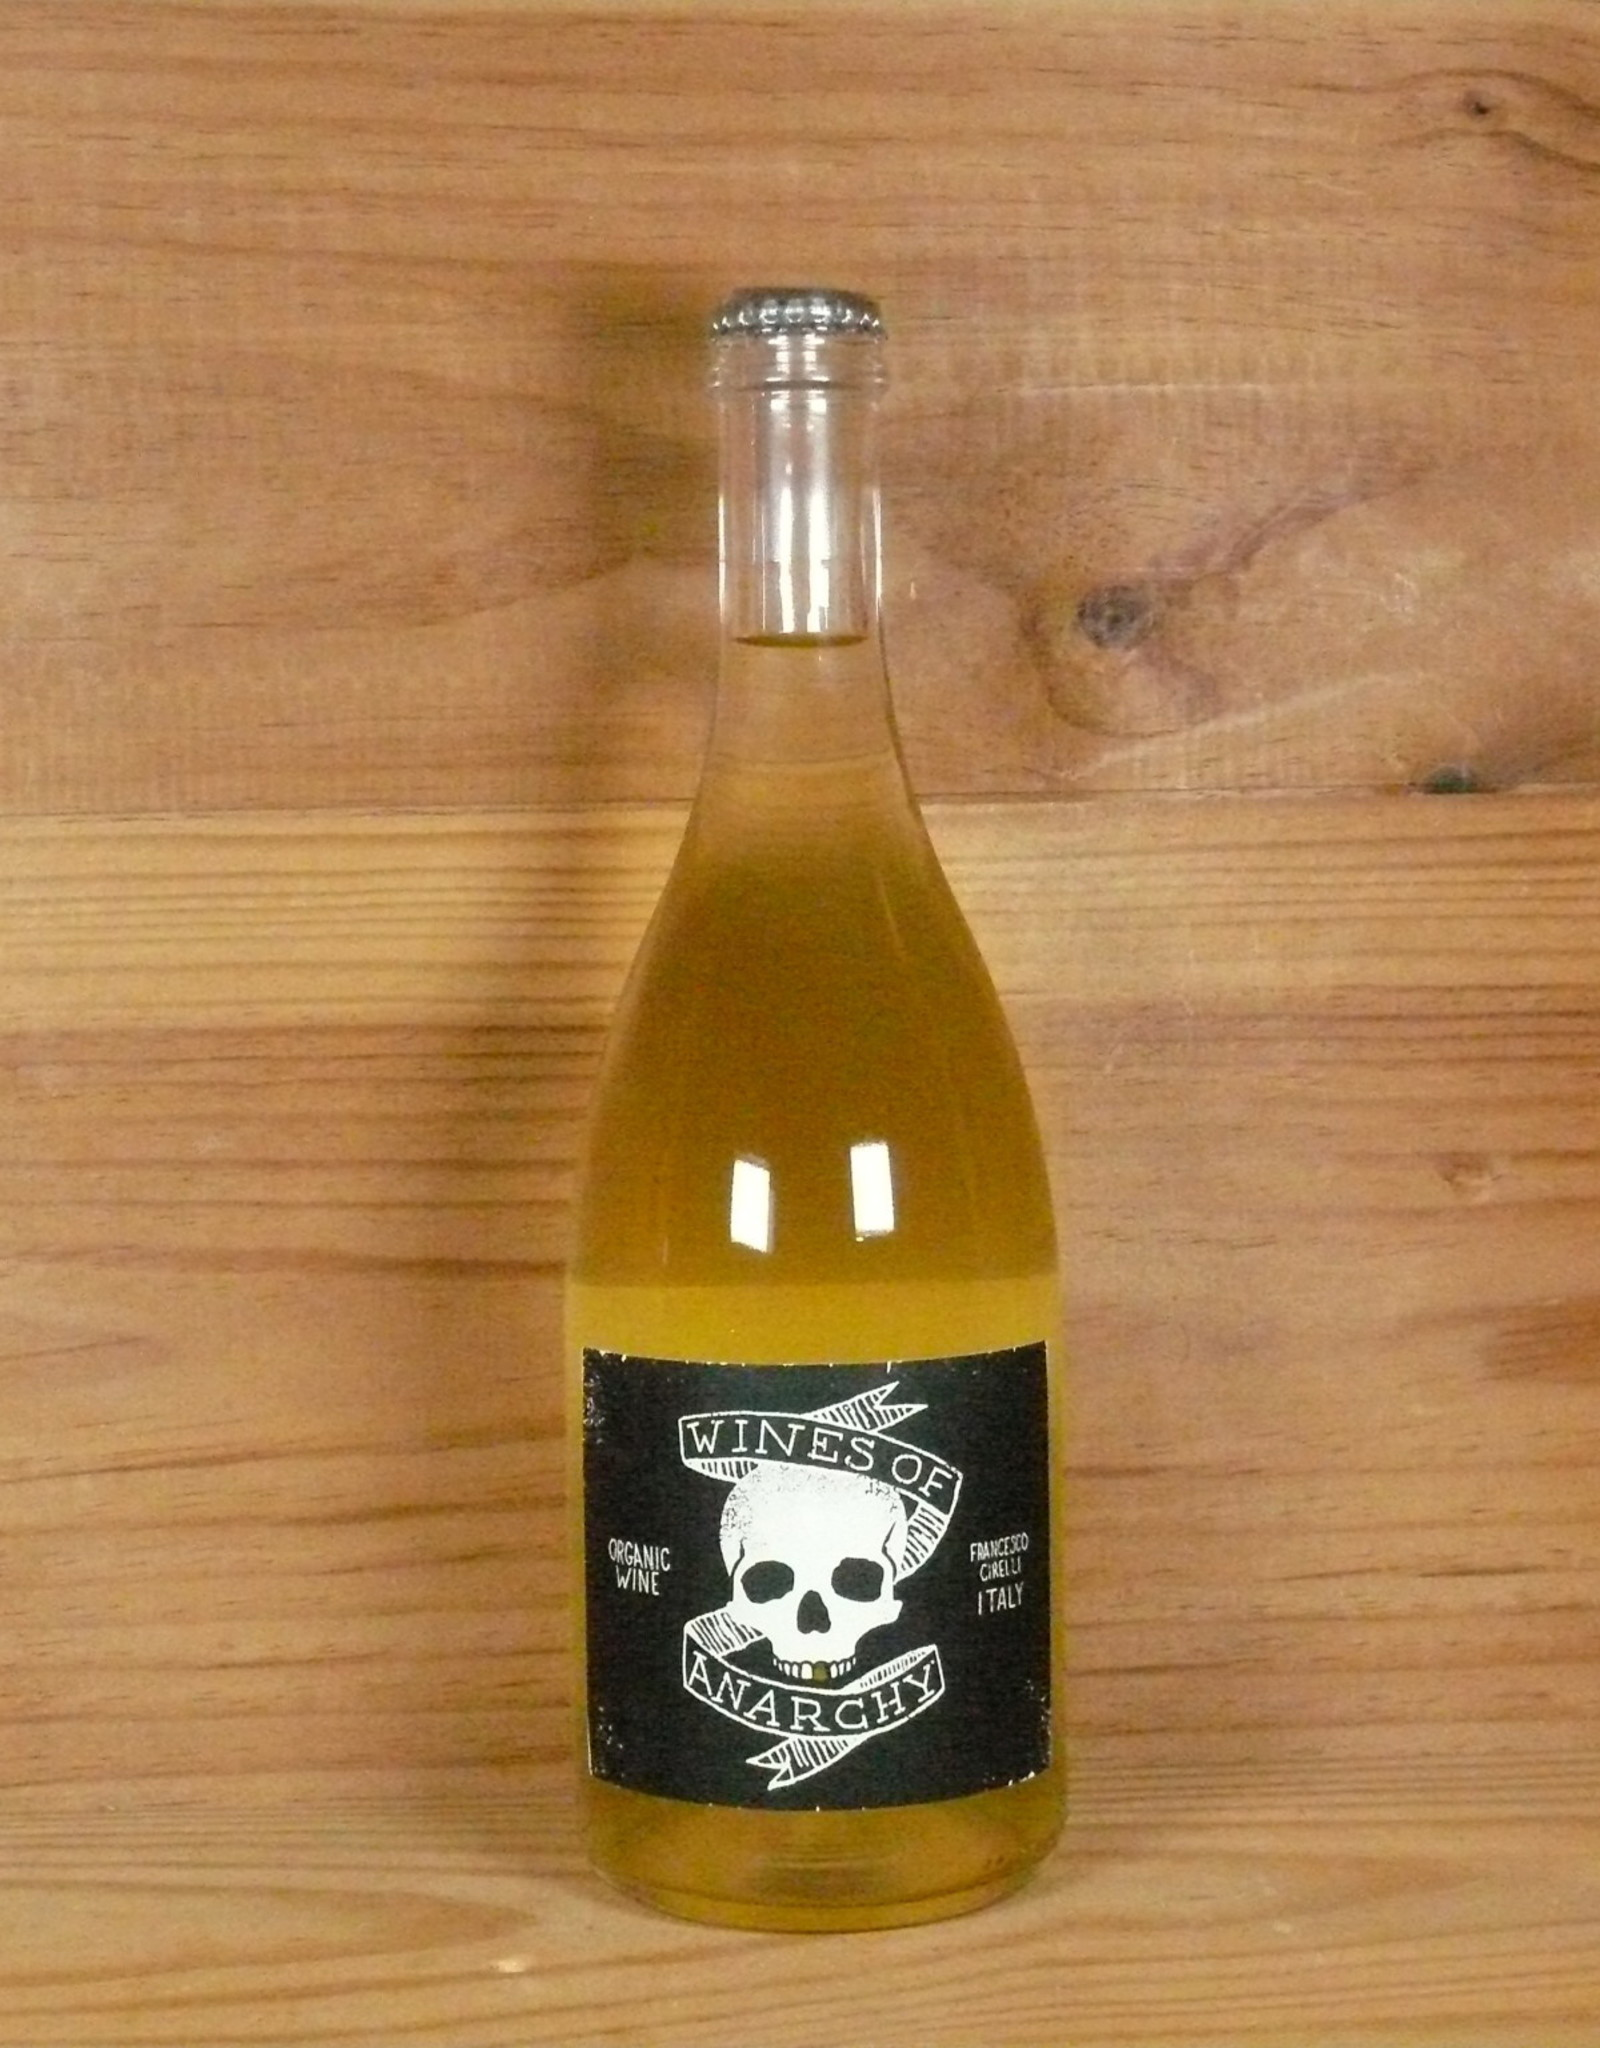 Cirelli 'Wines of Anarchy' Trebbiano